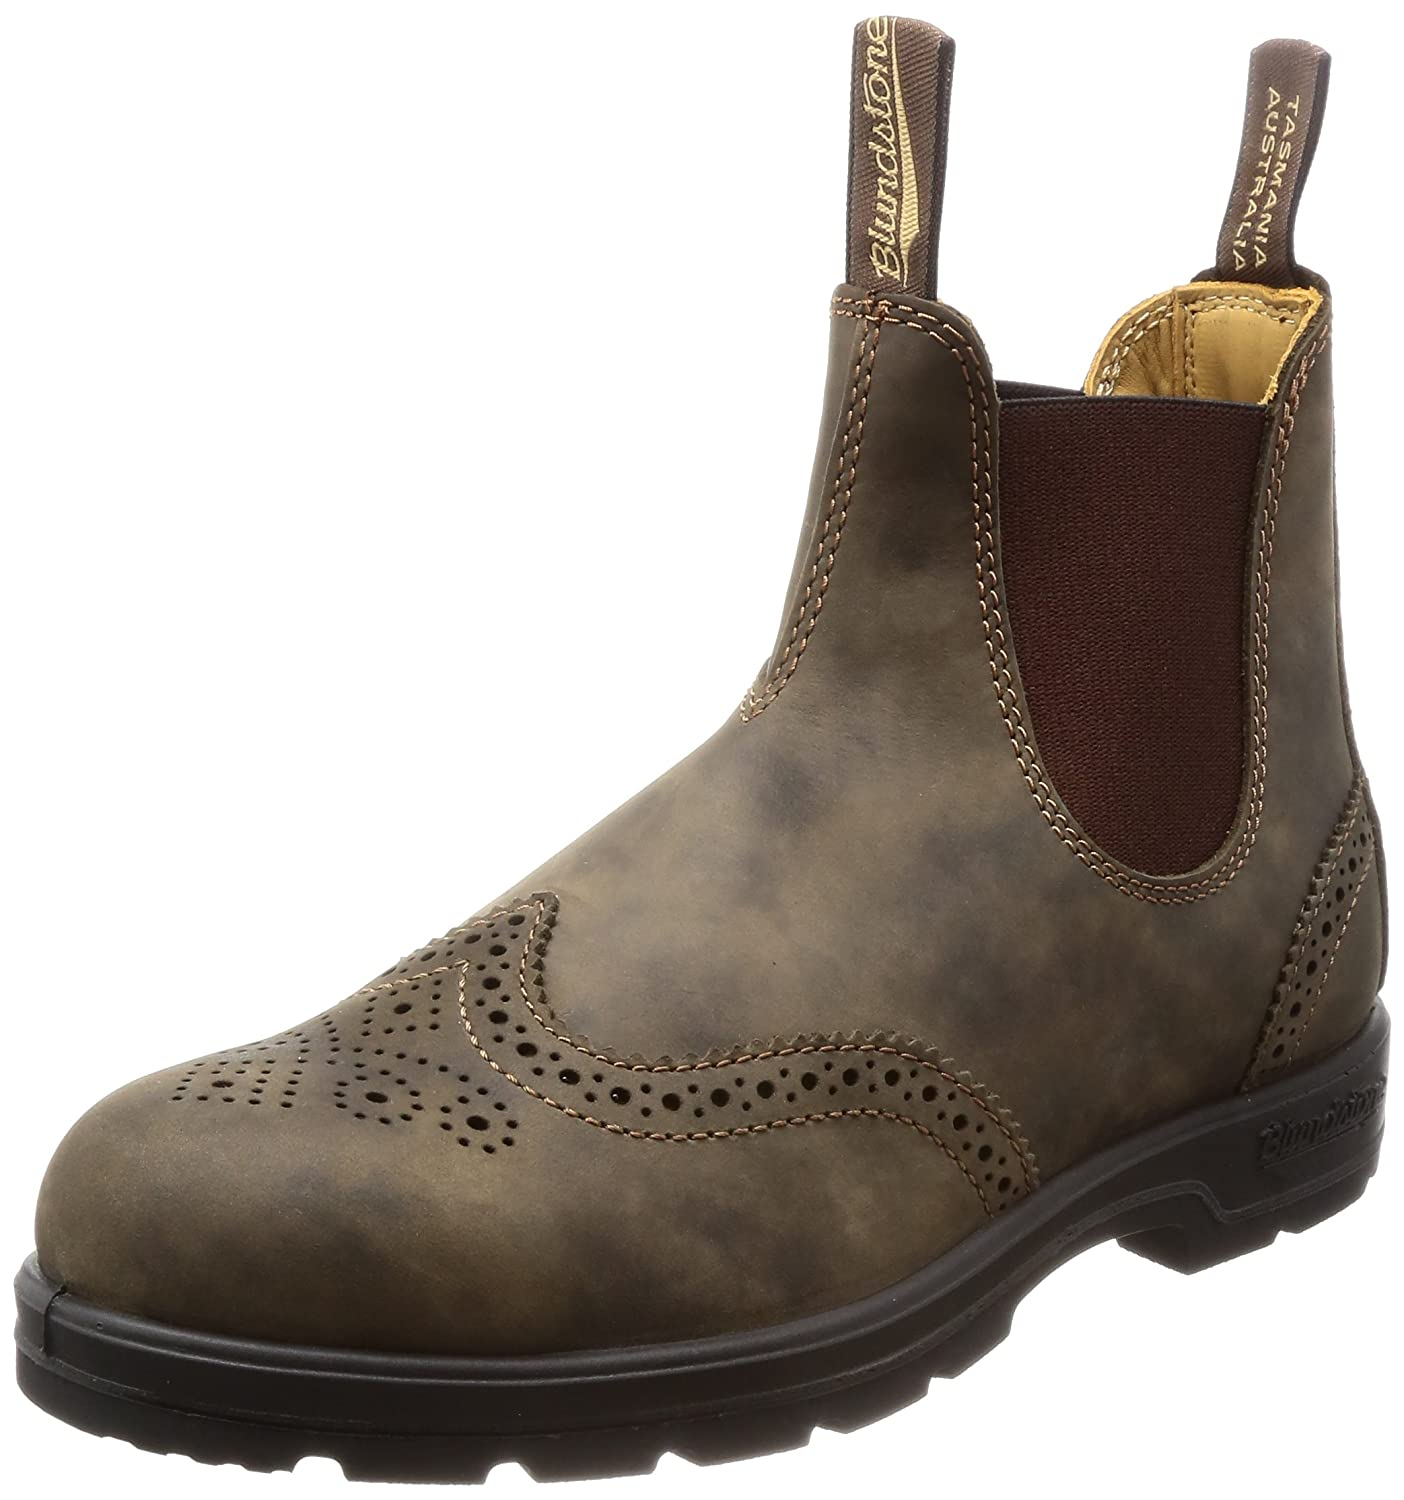 Blundstone Super 550 Series Boot B0713QF7GH 9.5 M AU/10.5 M US |Rustic Brown Brogue